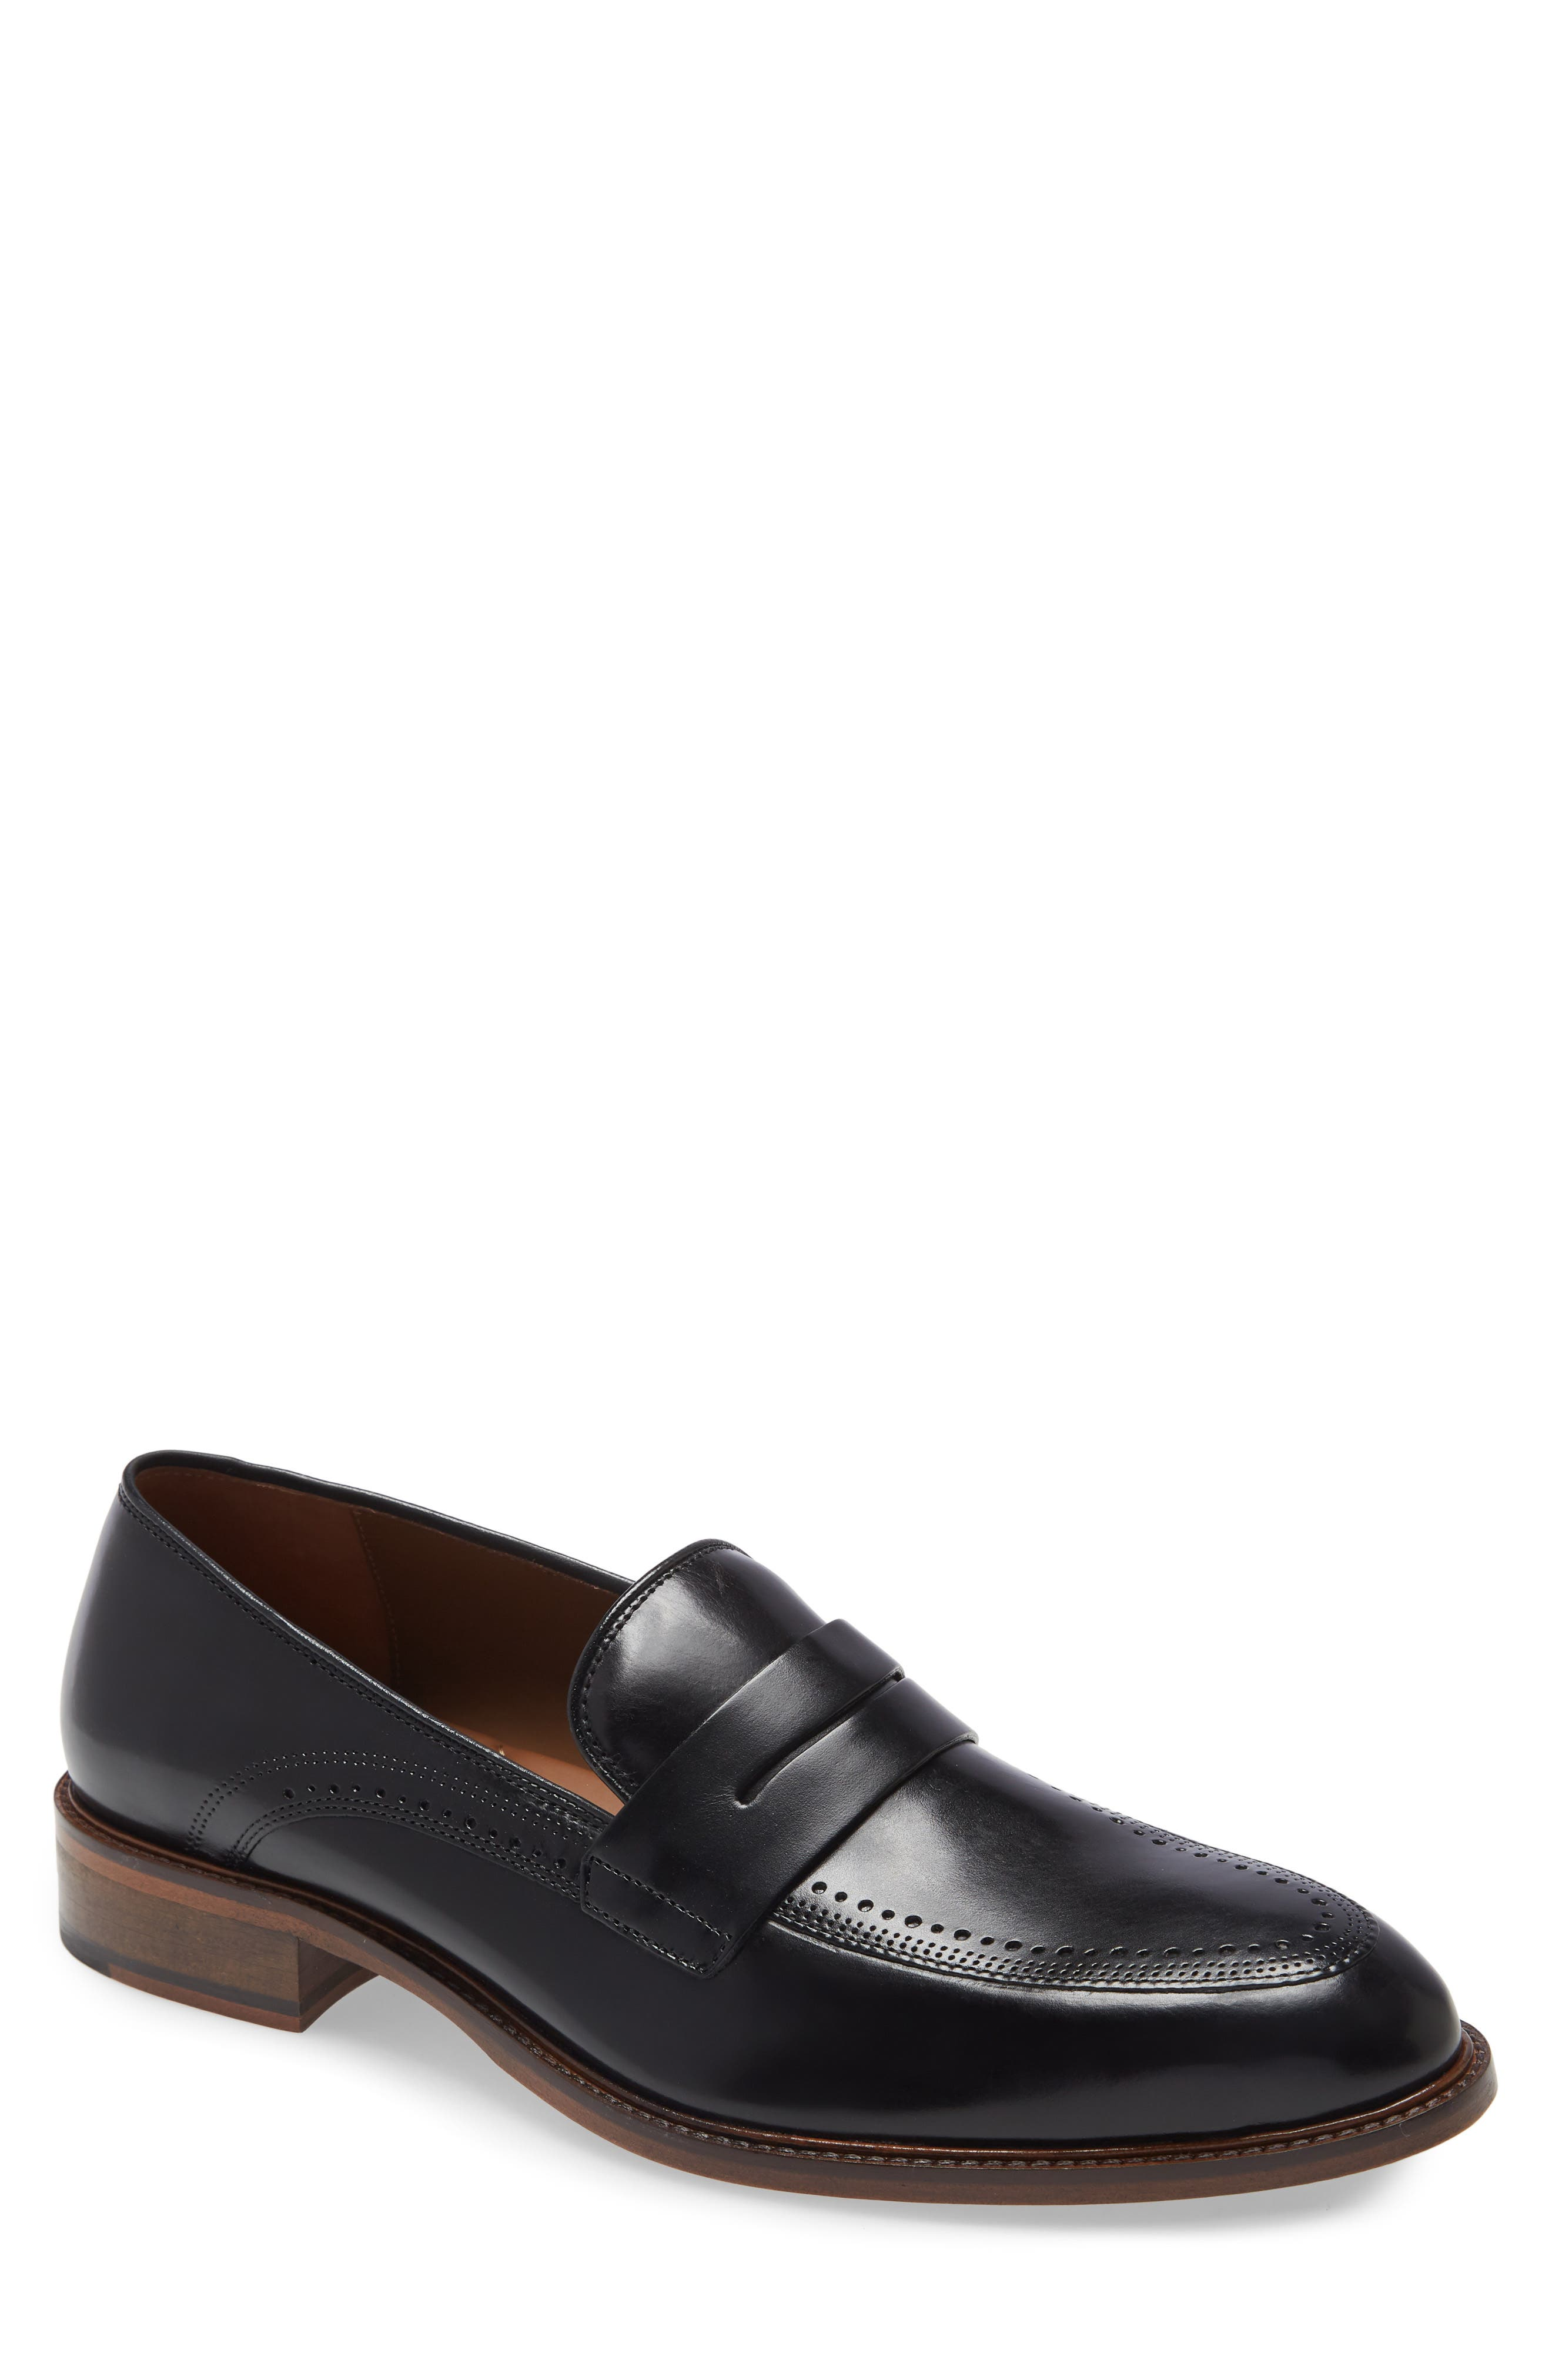 Sayer Brogued Penny Loafer